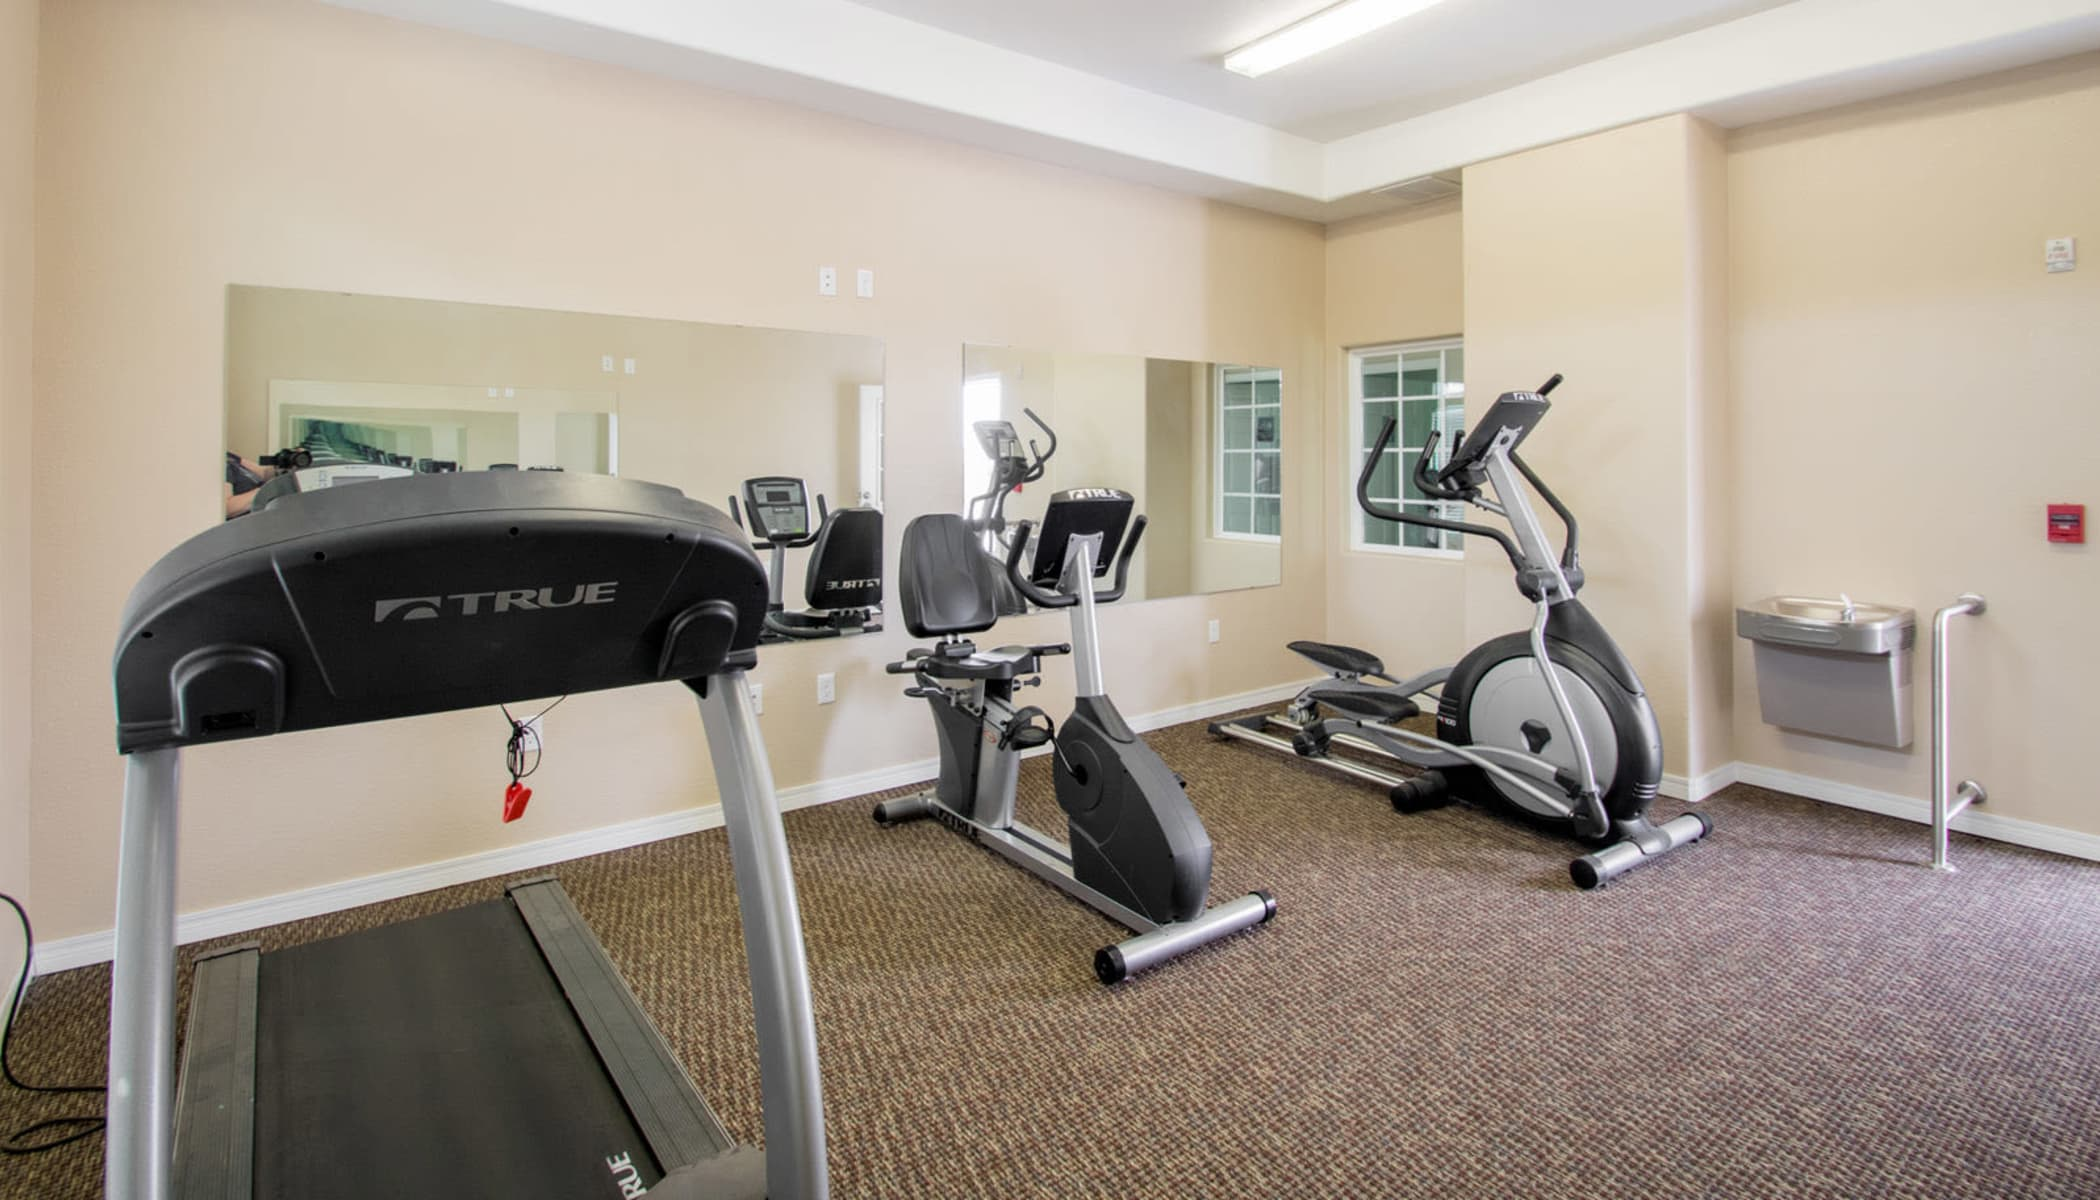 Fitness center at The Reserves at Brookside in Borger, TX